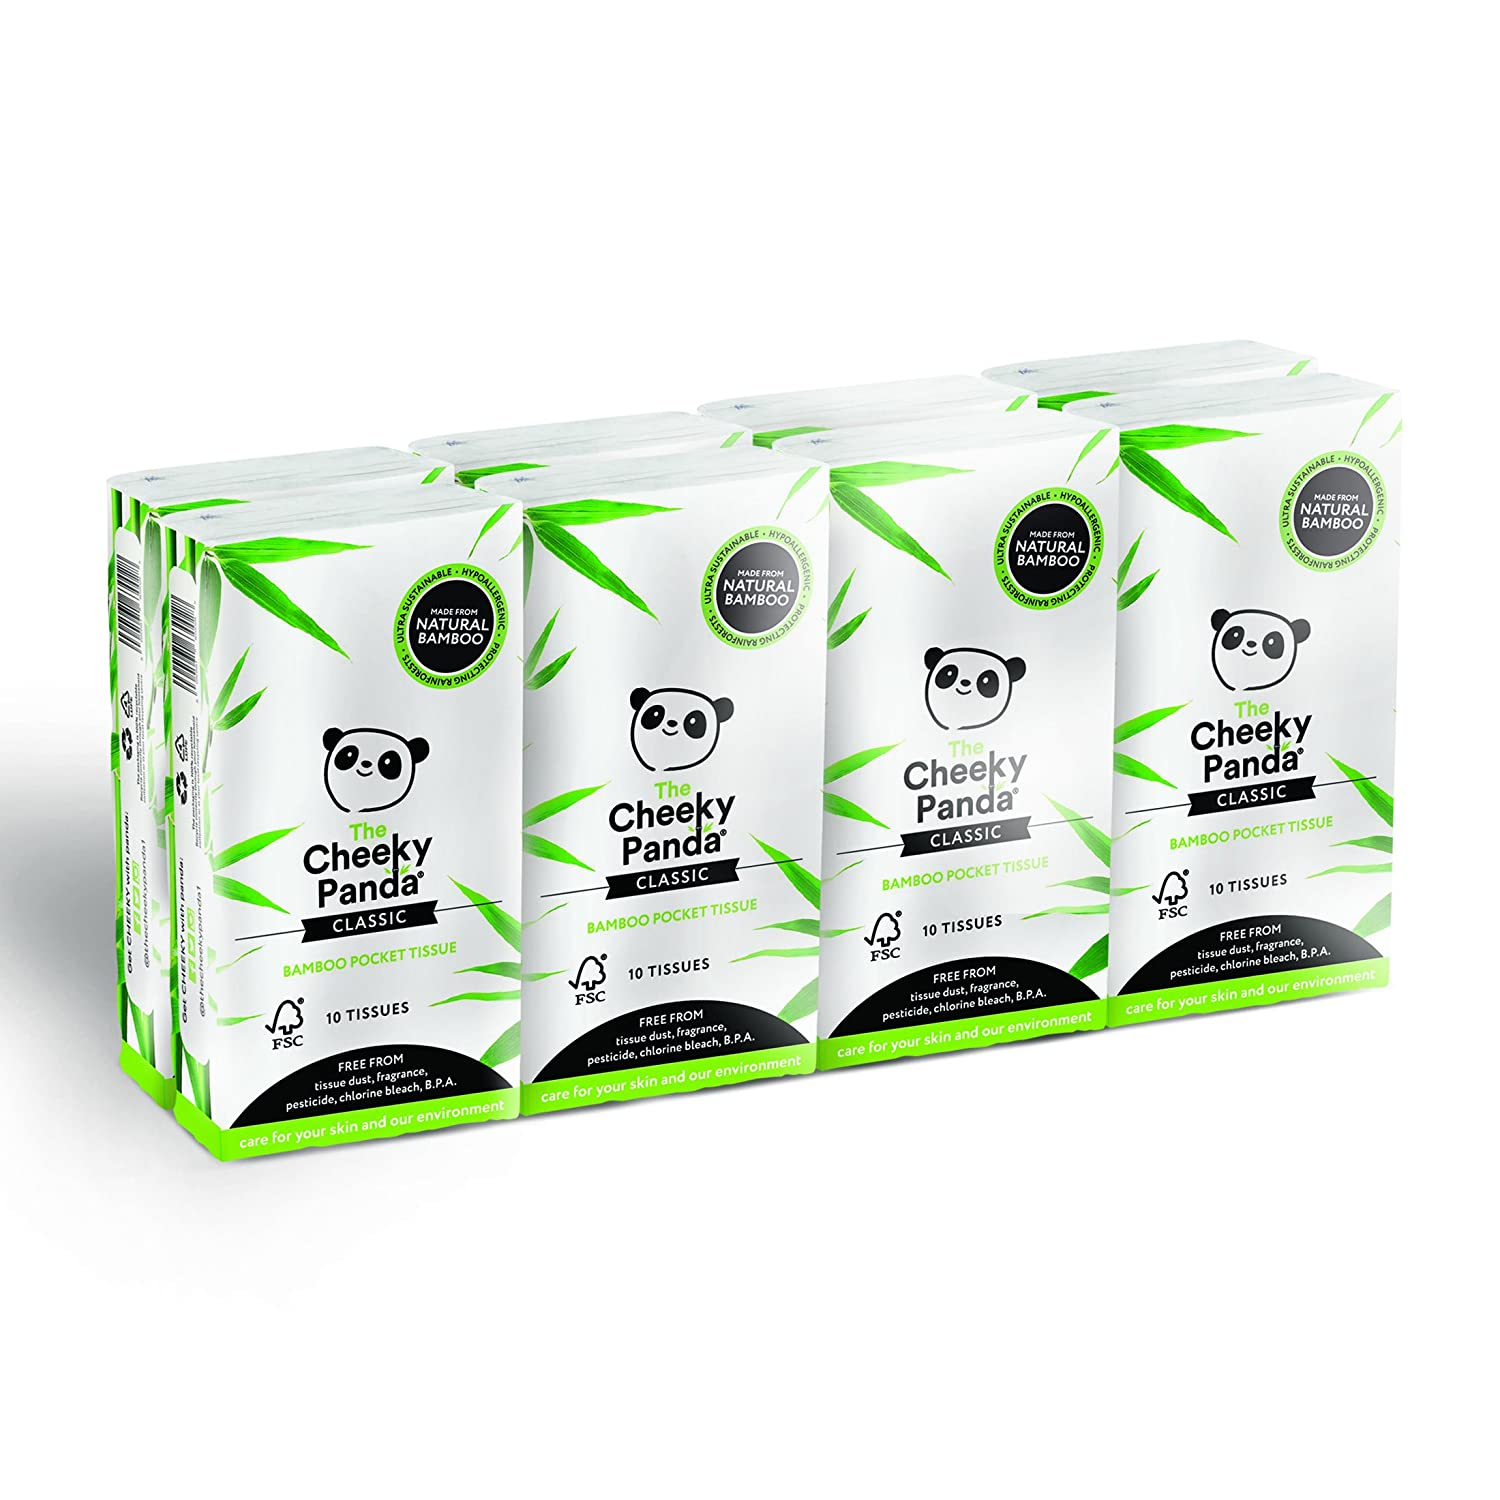 The Cheeky Panda 100 Percent Bamboo Pocket Tissue, Pack of 8 The Cheeky Panda Limited 5060561630035